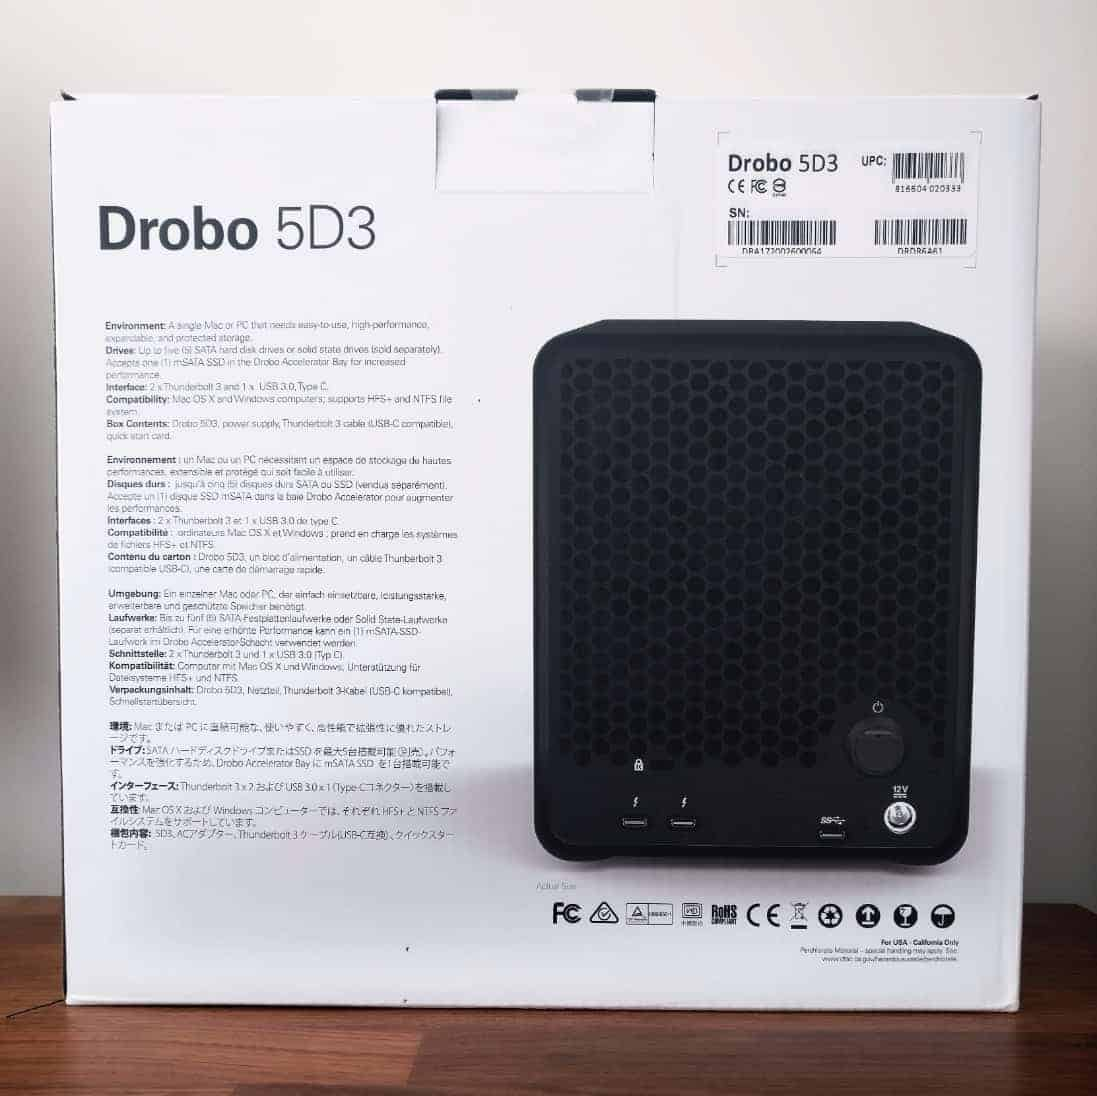 Drobo-5d3-photos-19 Drobo 5D3 DAS Review